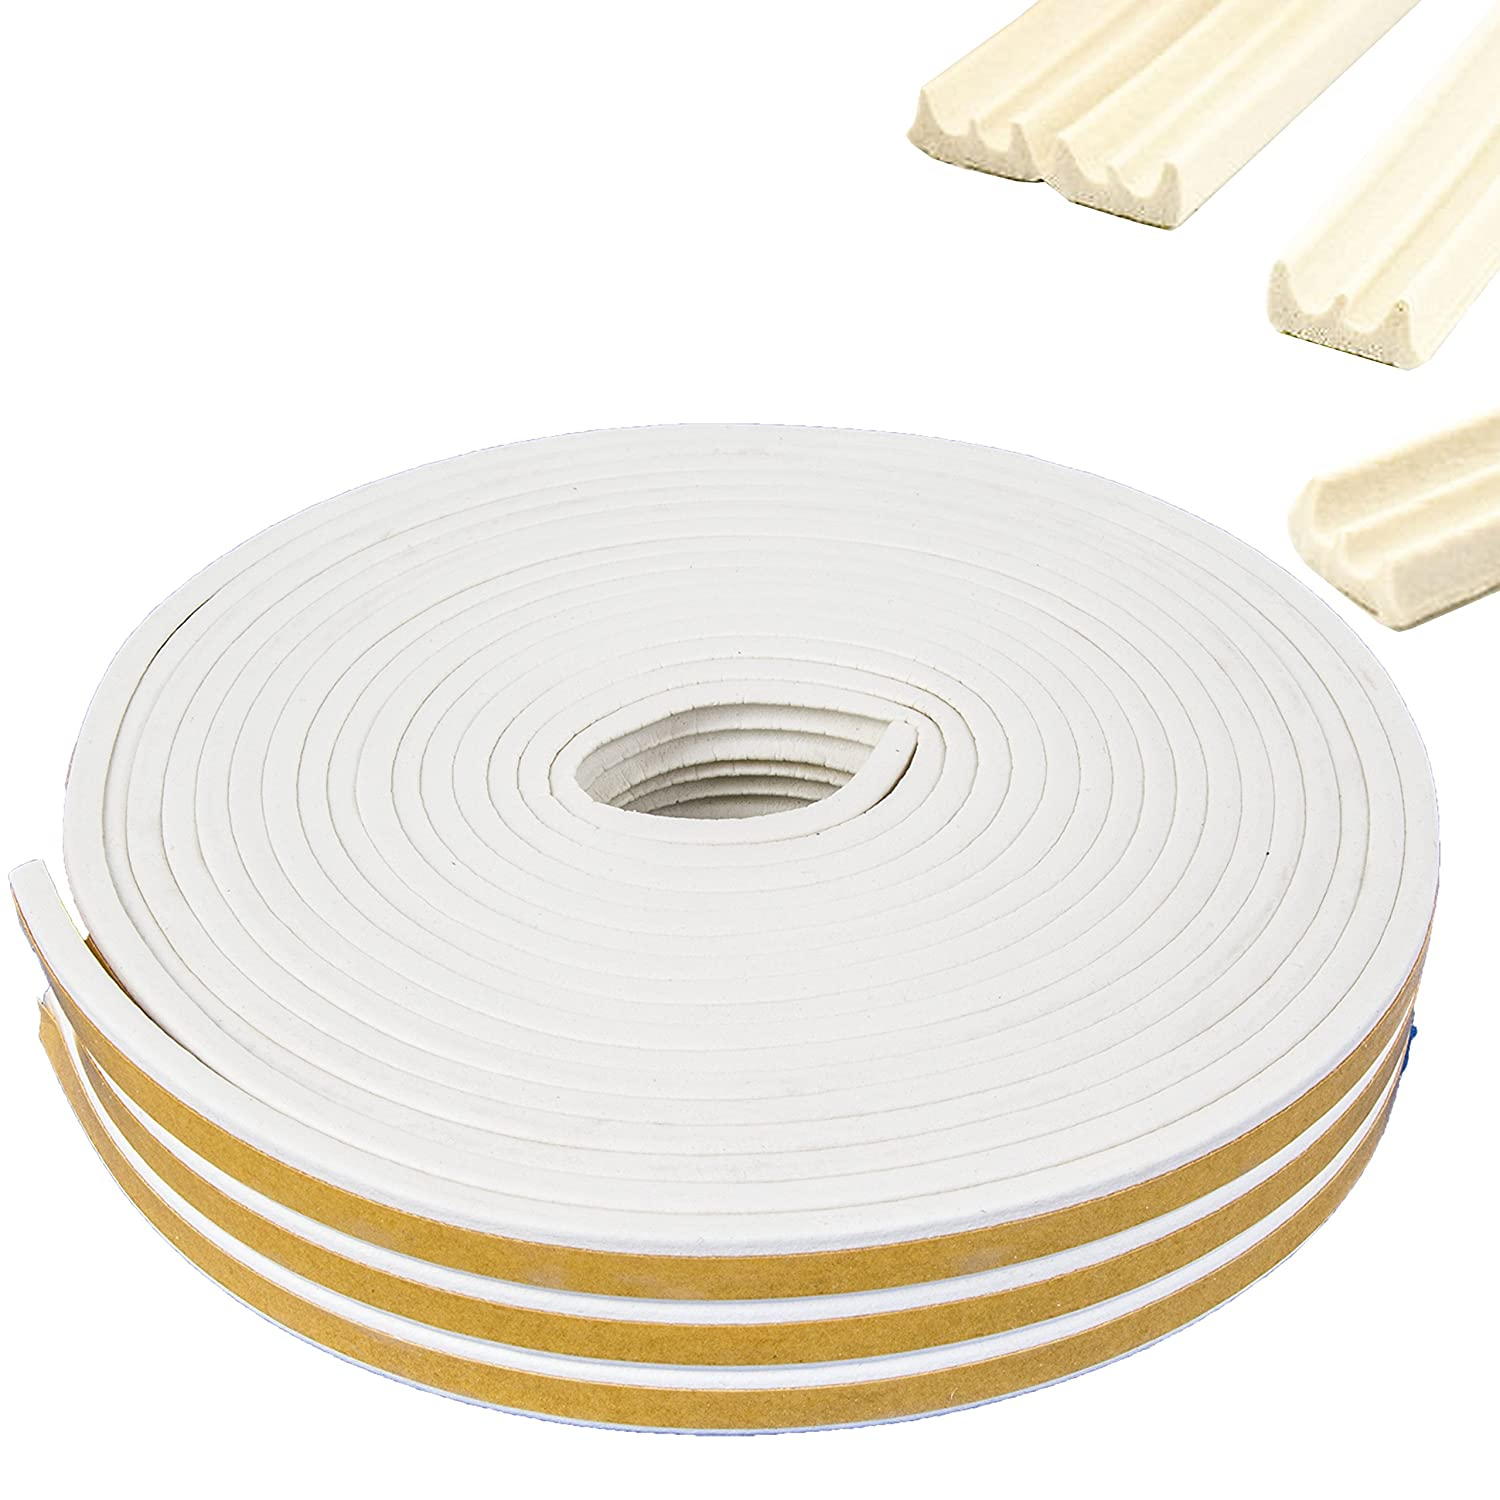 15m of E-Profile Self-Adhesive Weather Strip for Stopping Draughts in Gaps of 1-3mm White Hinge